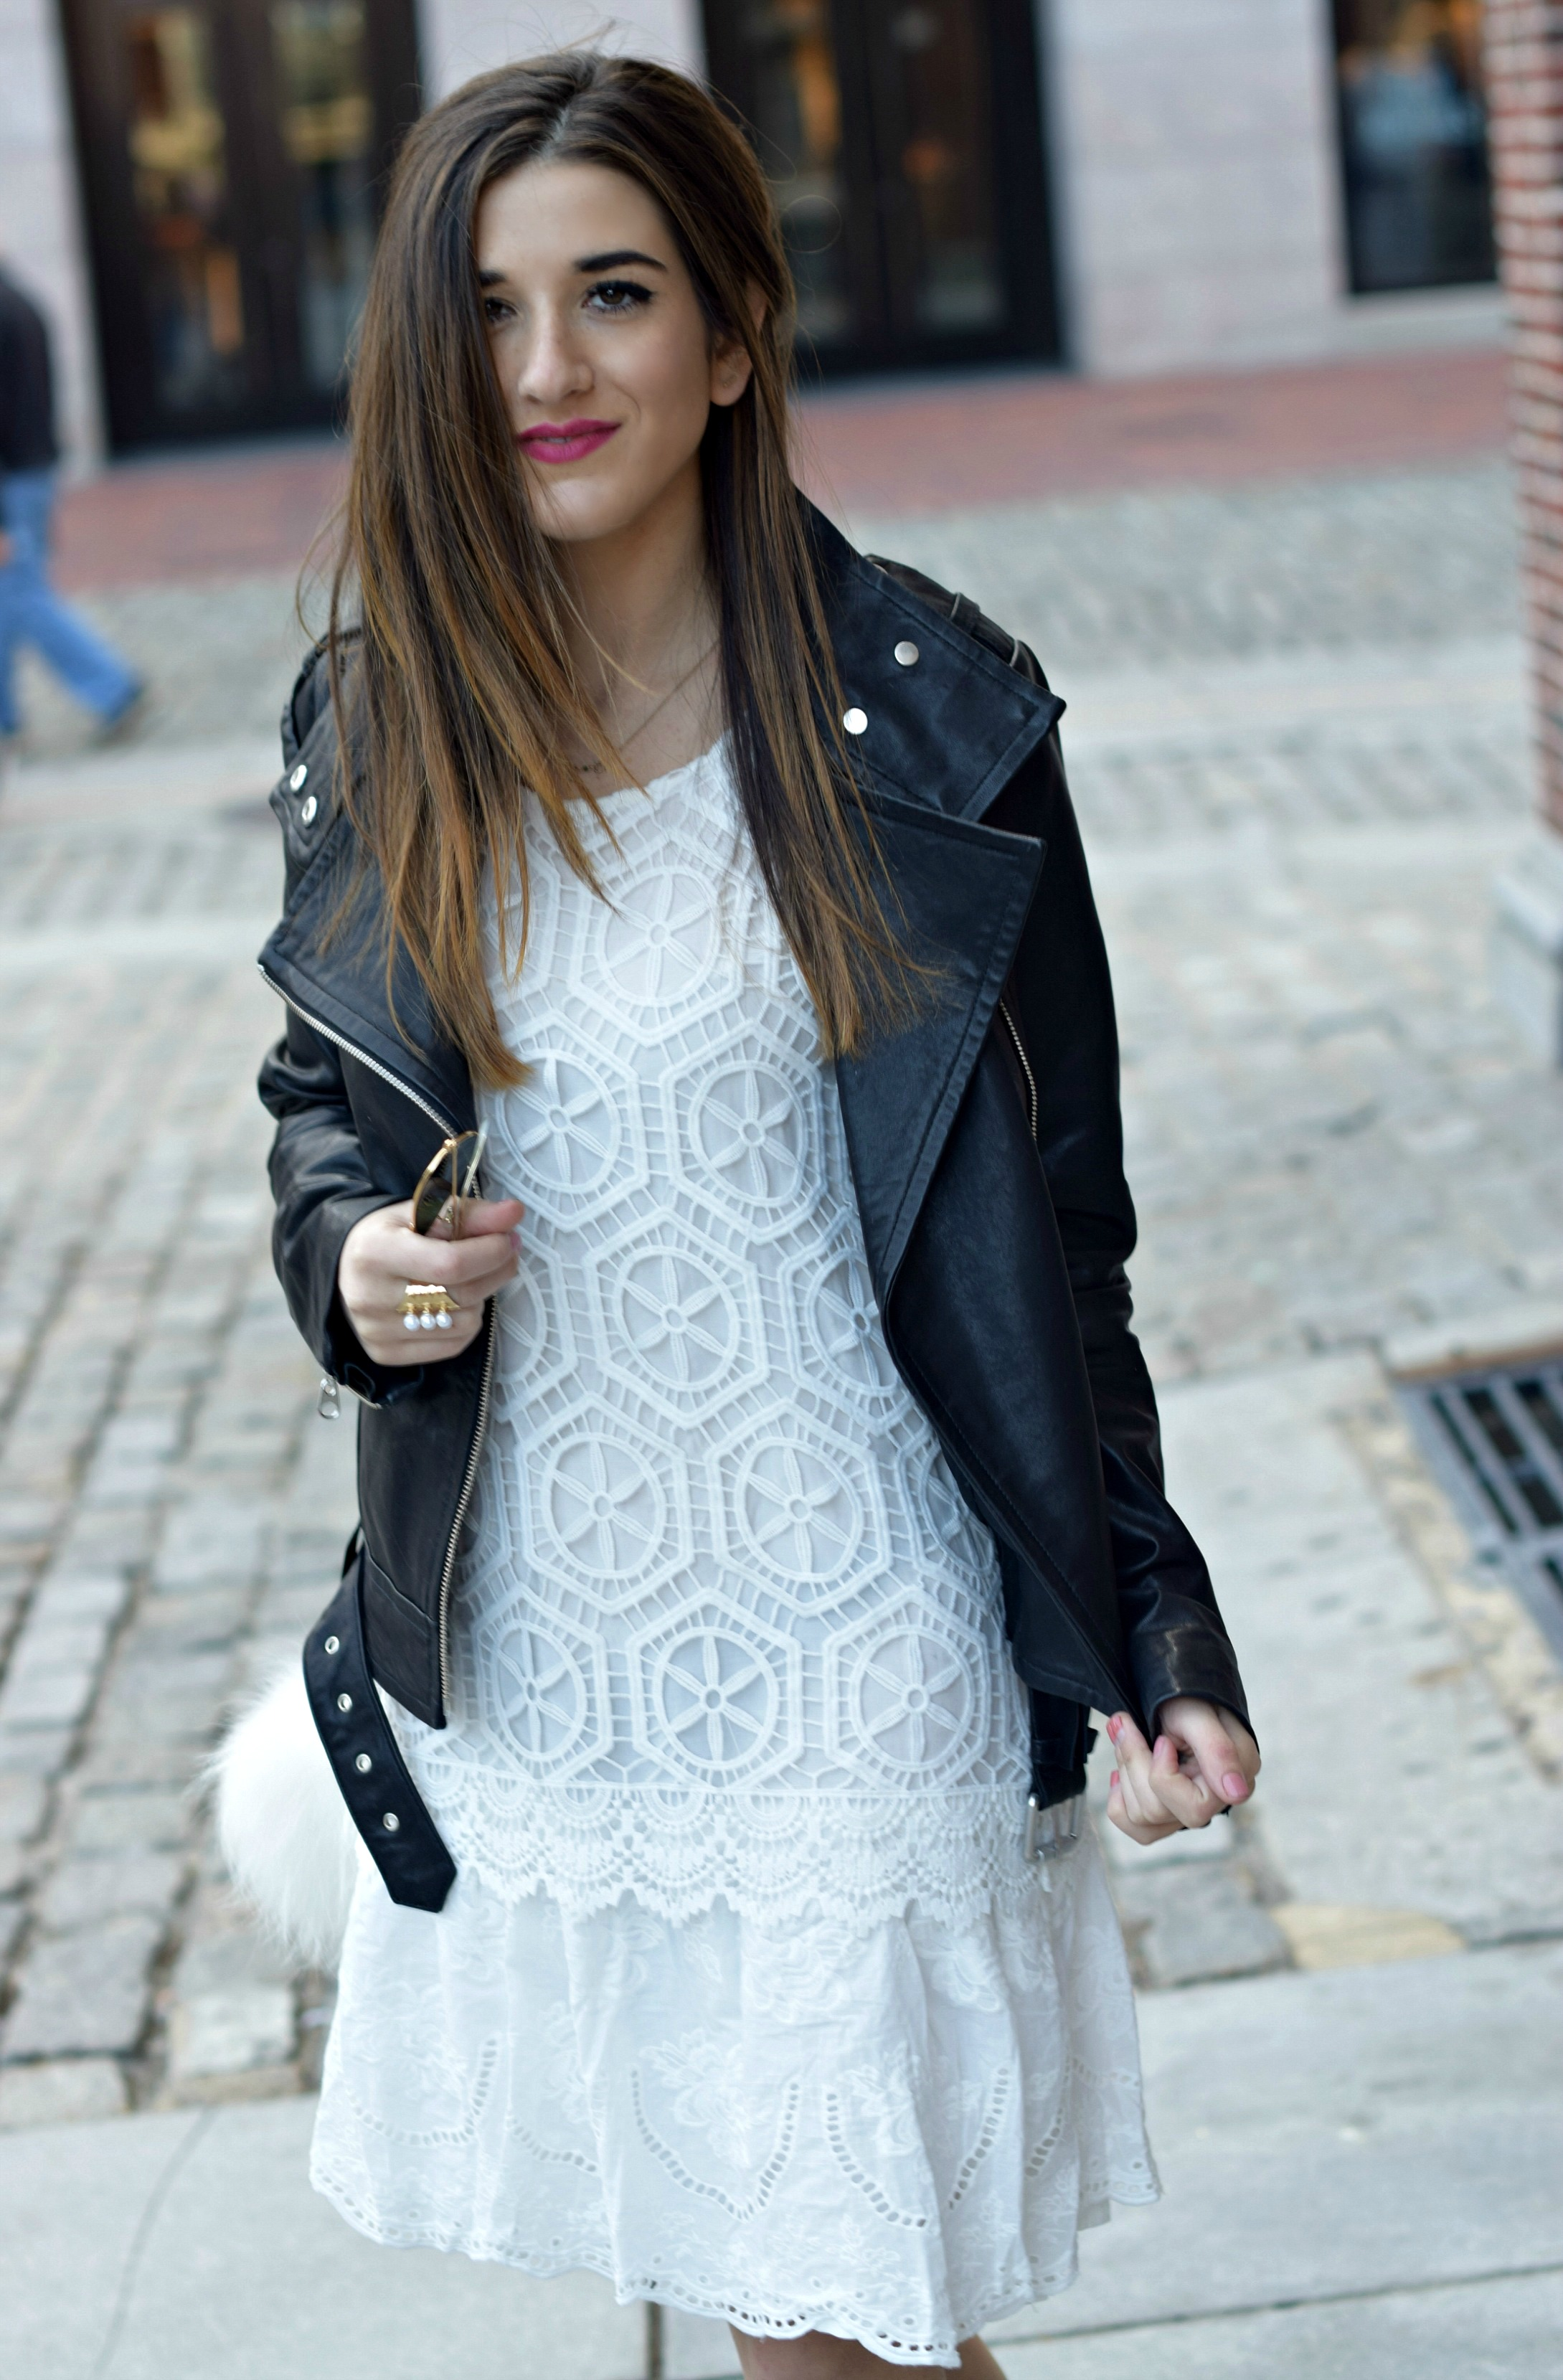 Desigual White Lace Dress Mackage Moto Jacket Louboutins & Love Fashion Blog Esther Santer NYC Street Style Blogger Outfit OOTD Black Booties Nordstrom Shoes Inspo Photoshoot Boston Leather Bag Pom Pom Fall Look Model Girl Women Beautiful Hair Pretty.jpg